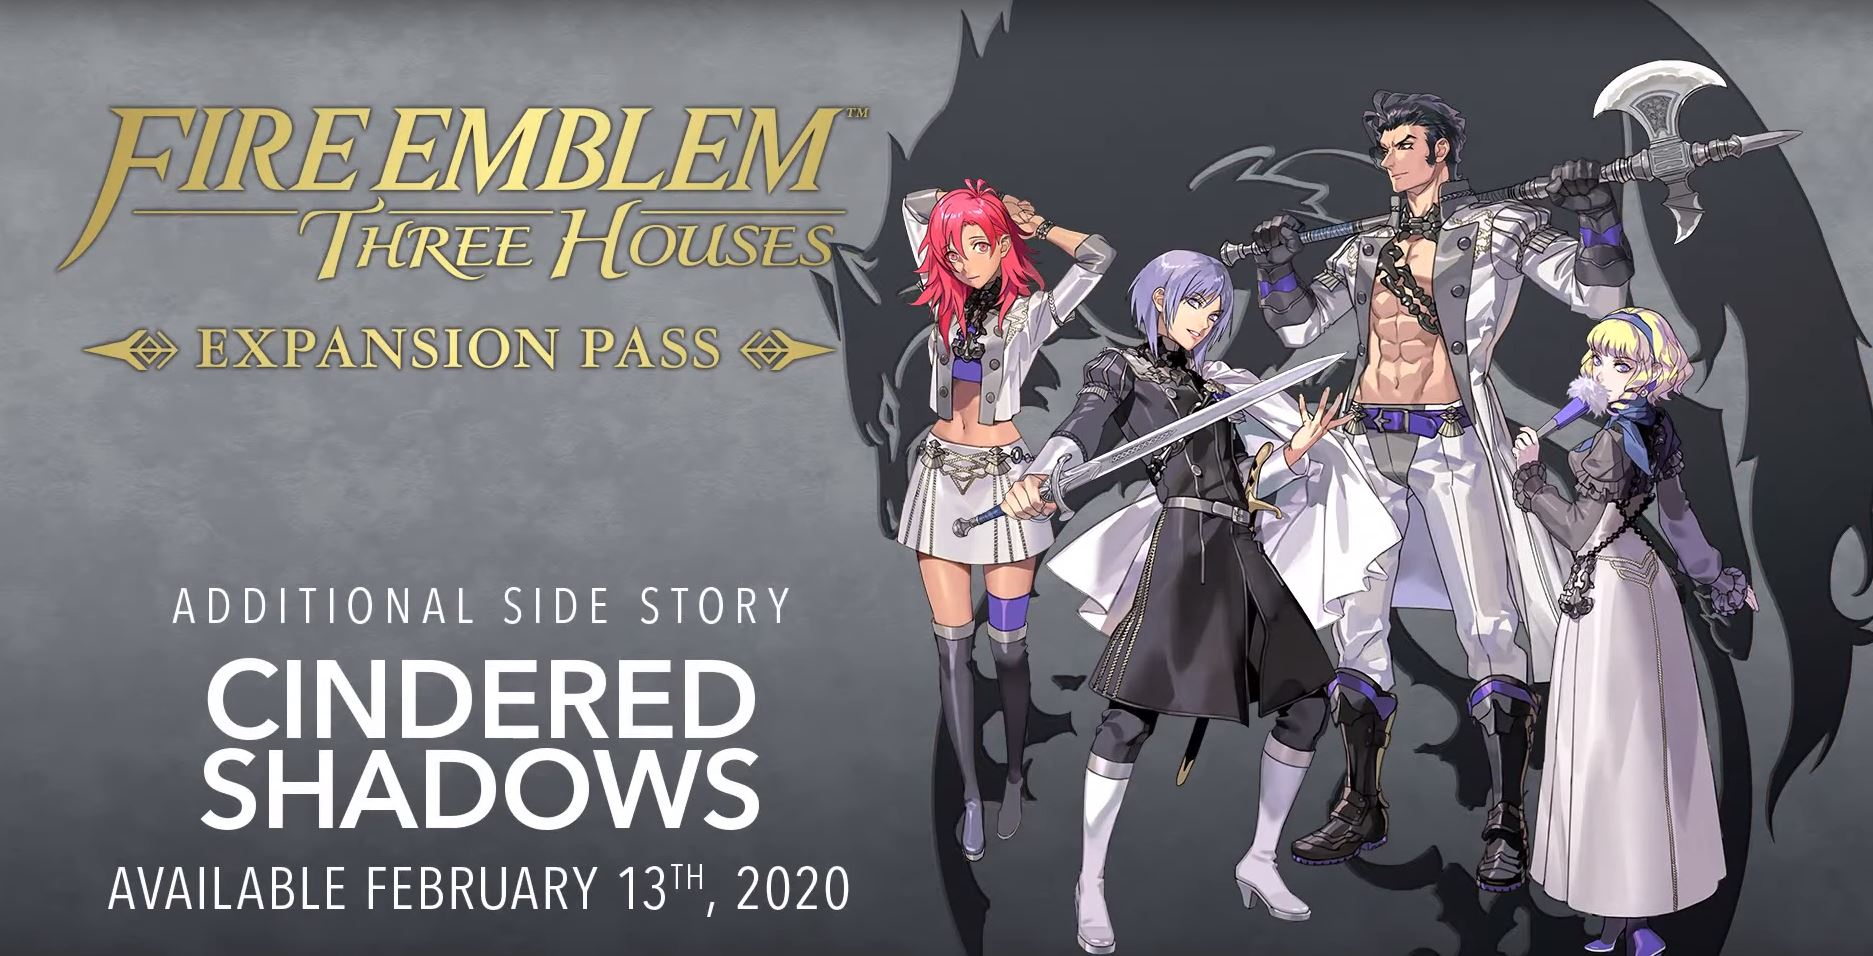 How to play the Cindered Shadows DLC in Fire Emblem: Three Houses